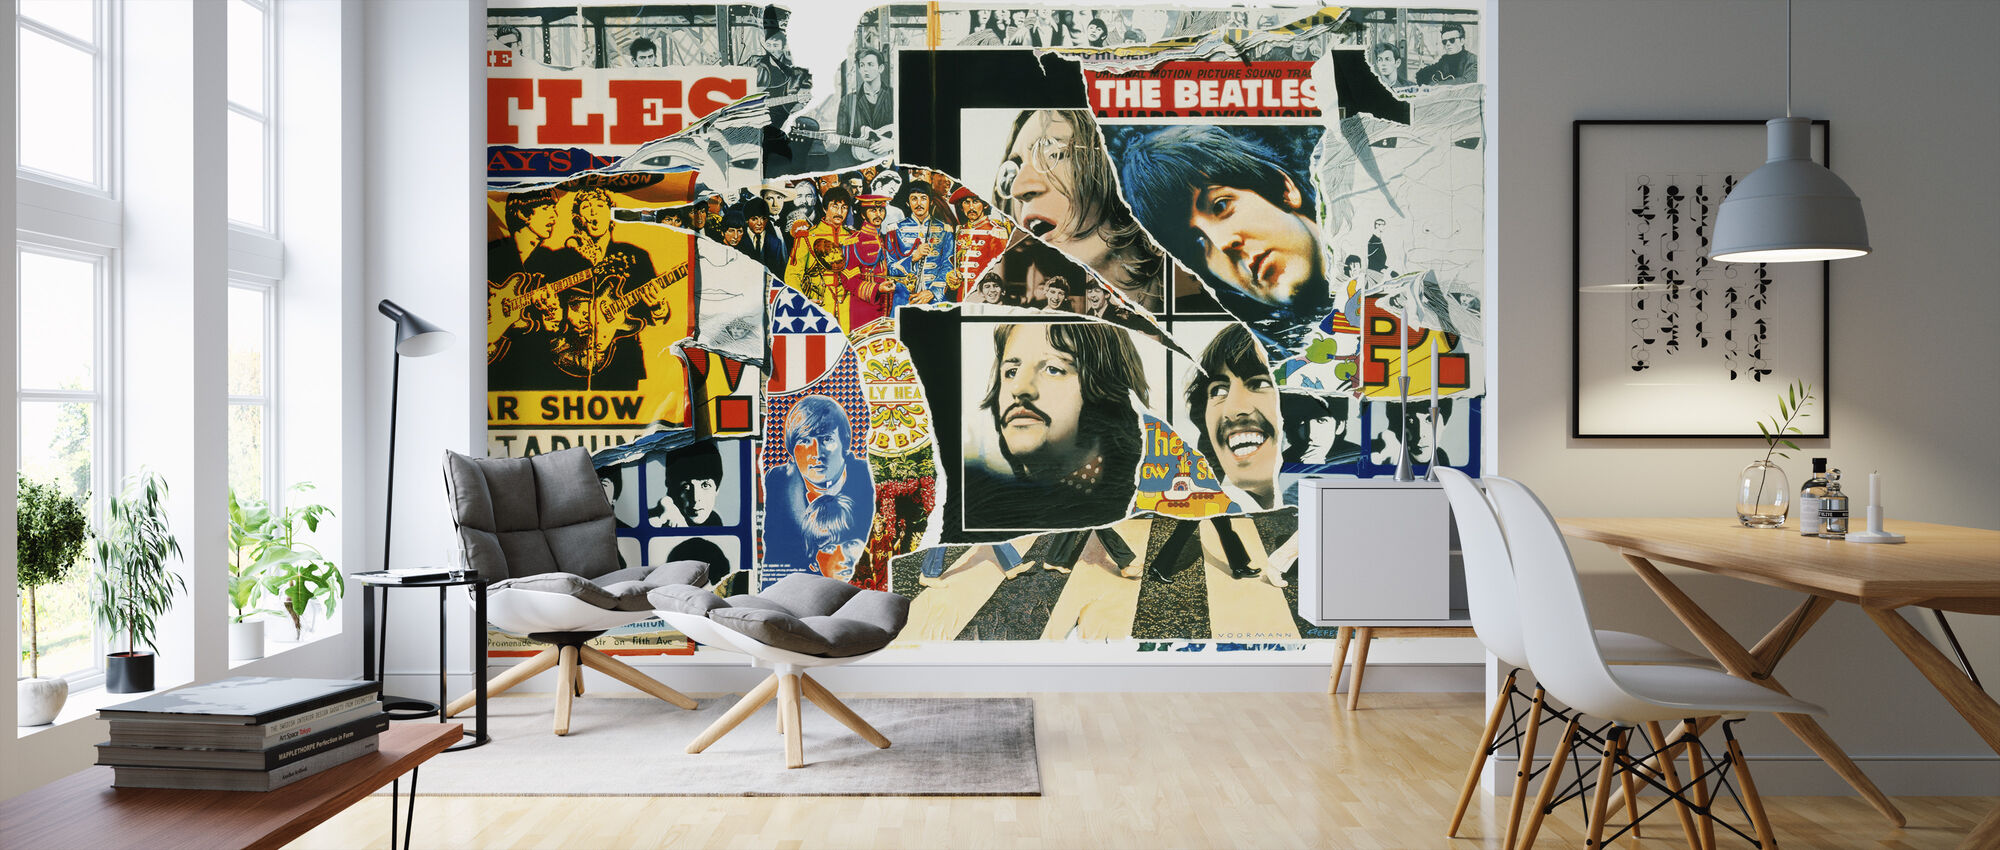 Beatles - Vintage Poster Wall - Wallpaper - Living Room